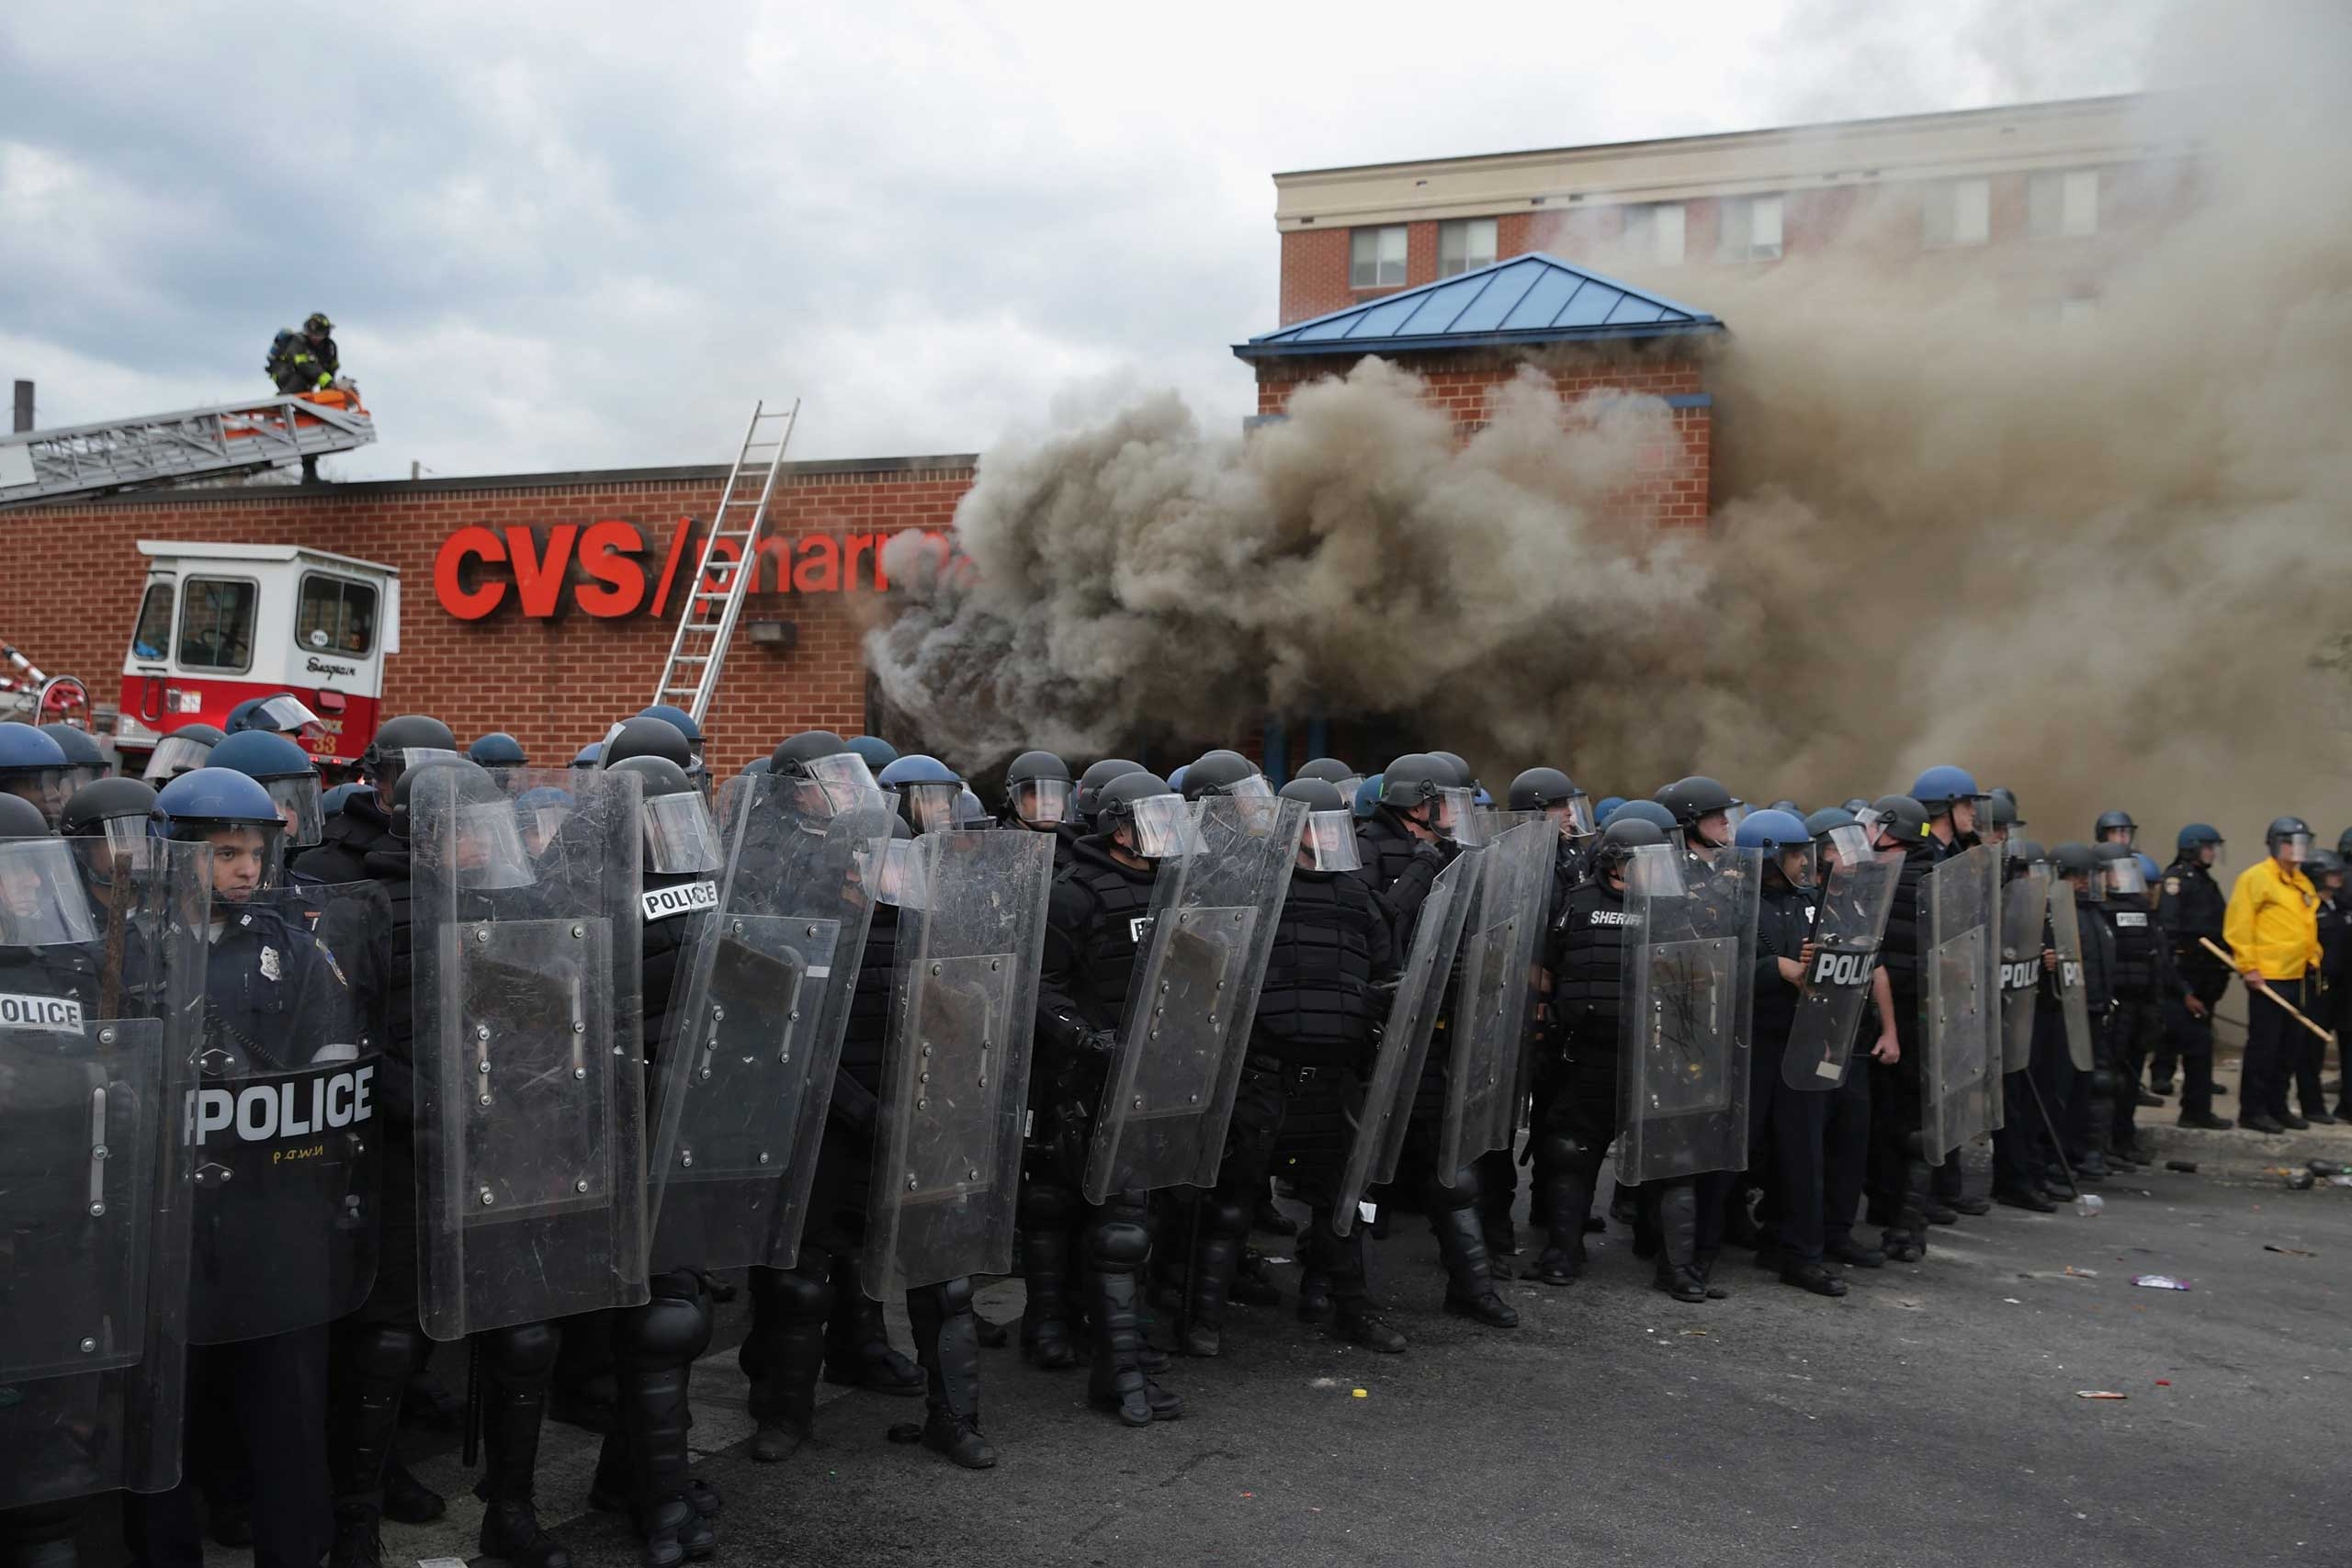 Baltimore Police form a perimeter around a CVS pharmacy that was looted and burned in Baltimore on April 27, 2015.